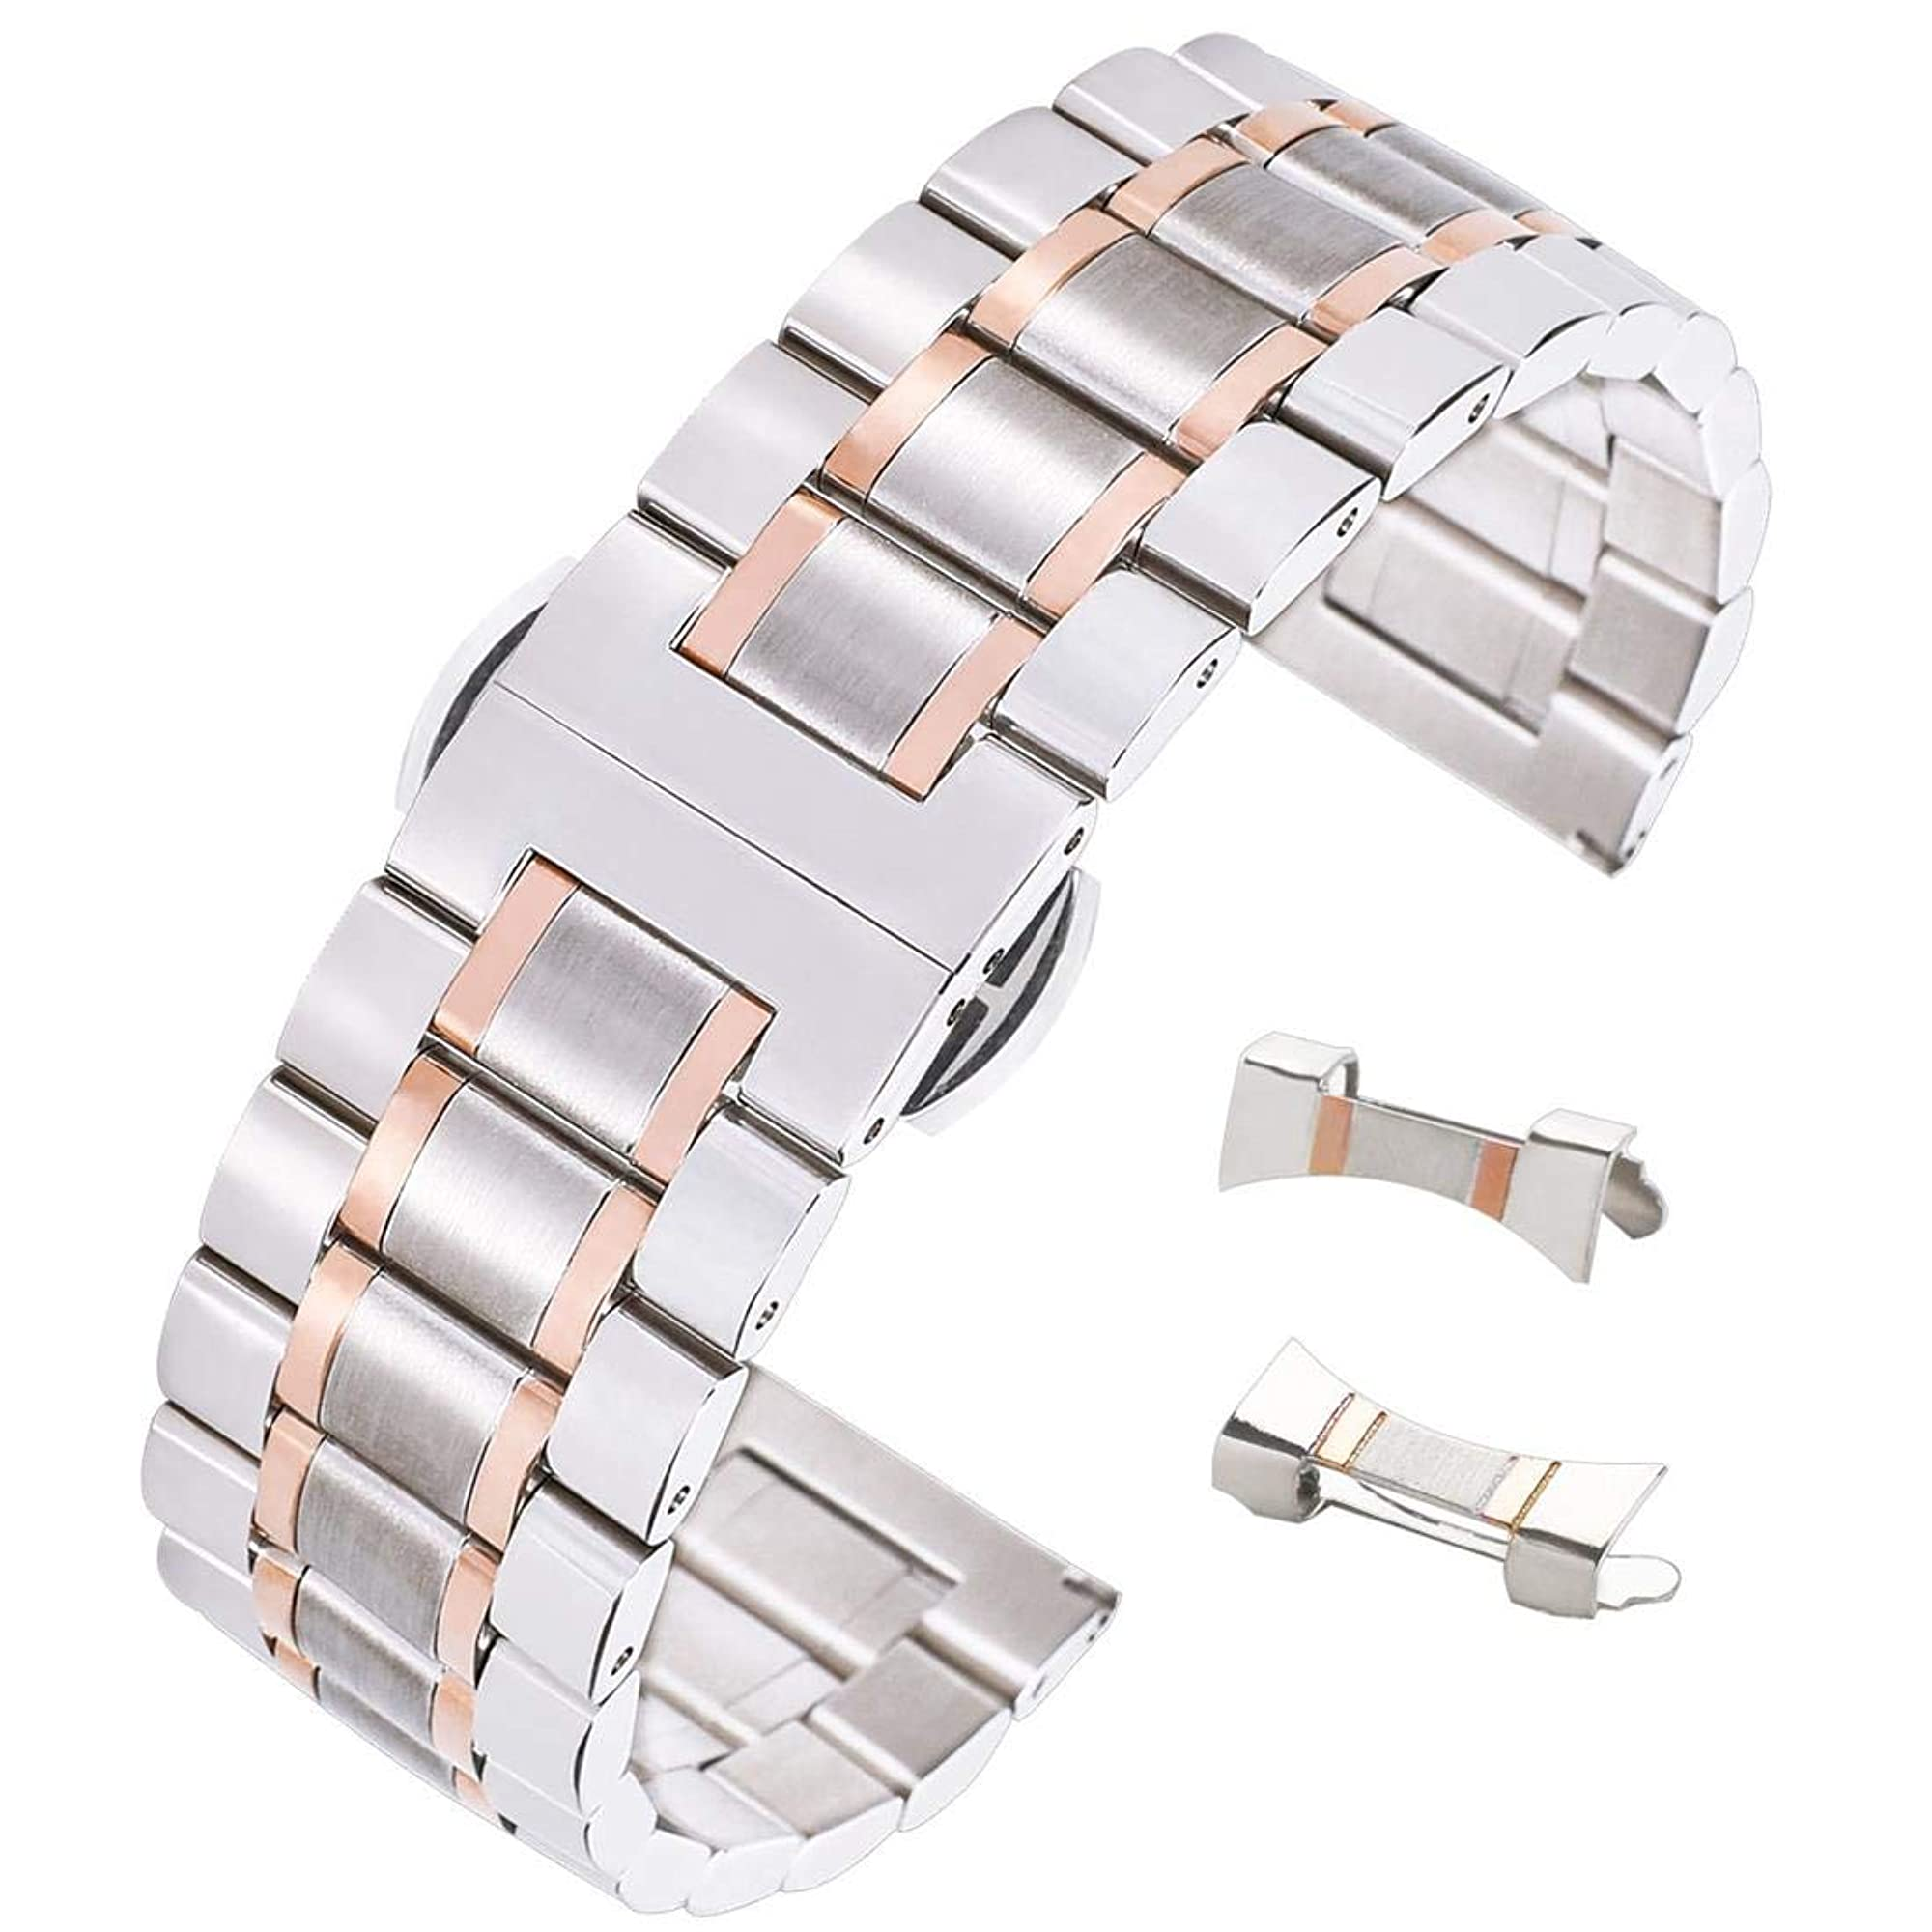 Stunning Brushed Stainless Steel Watch Strap